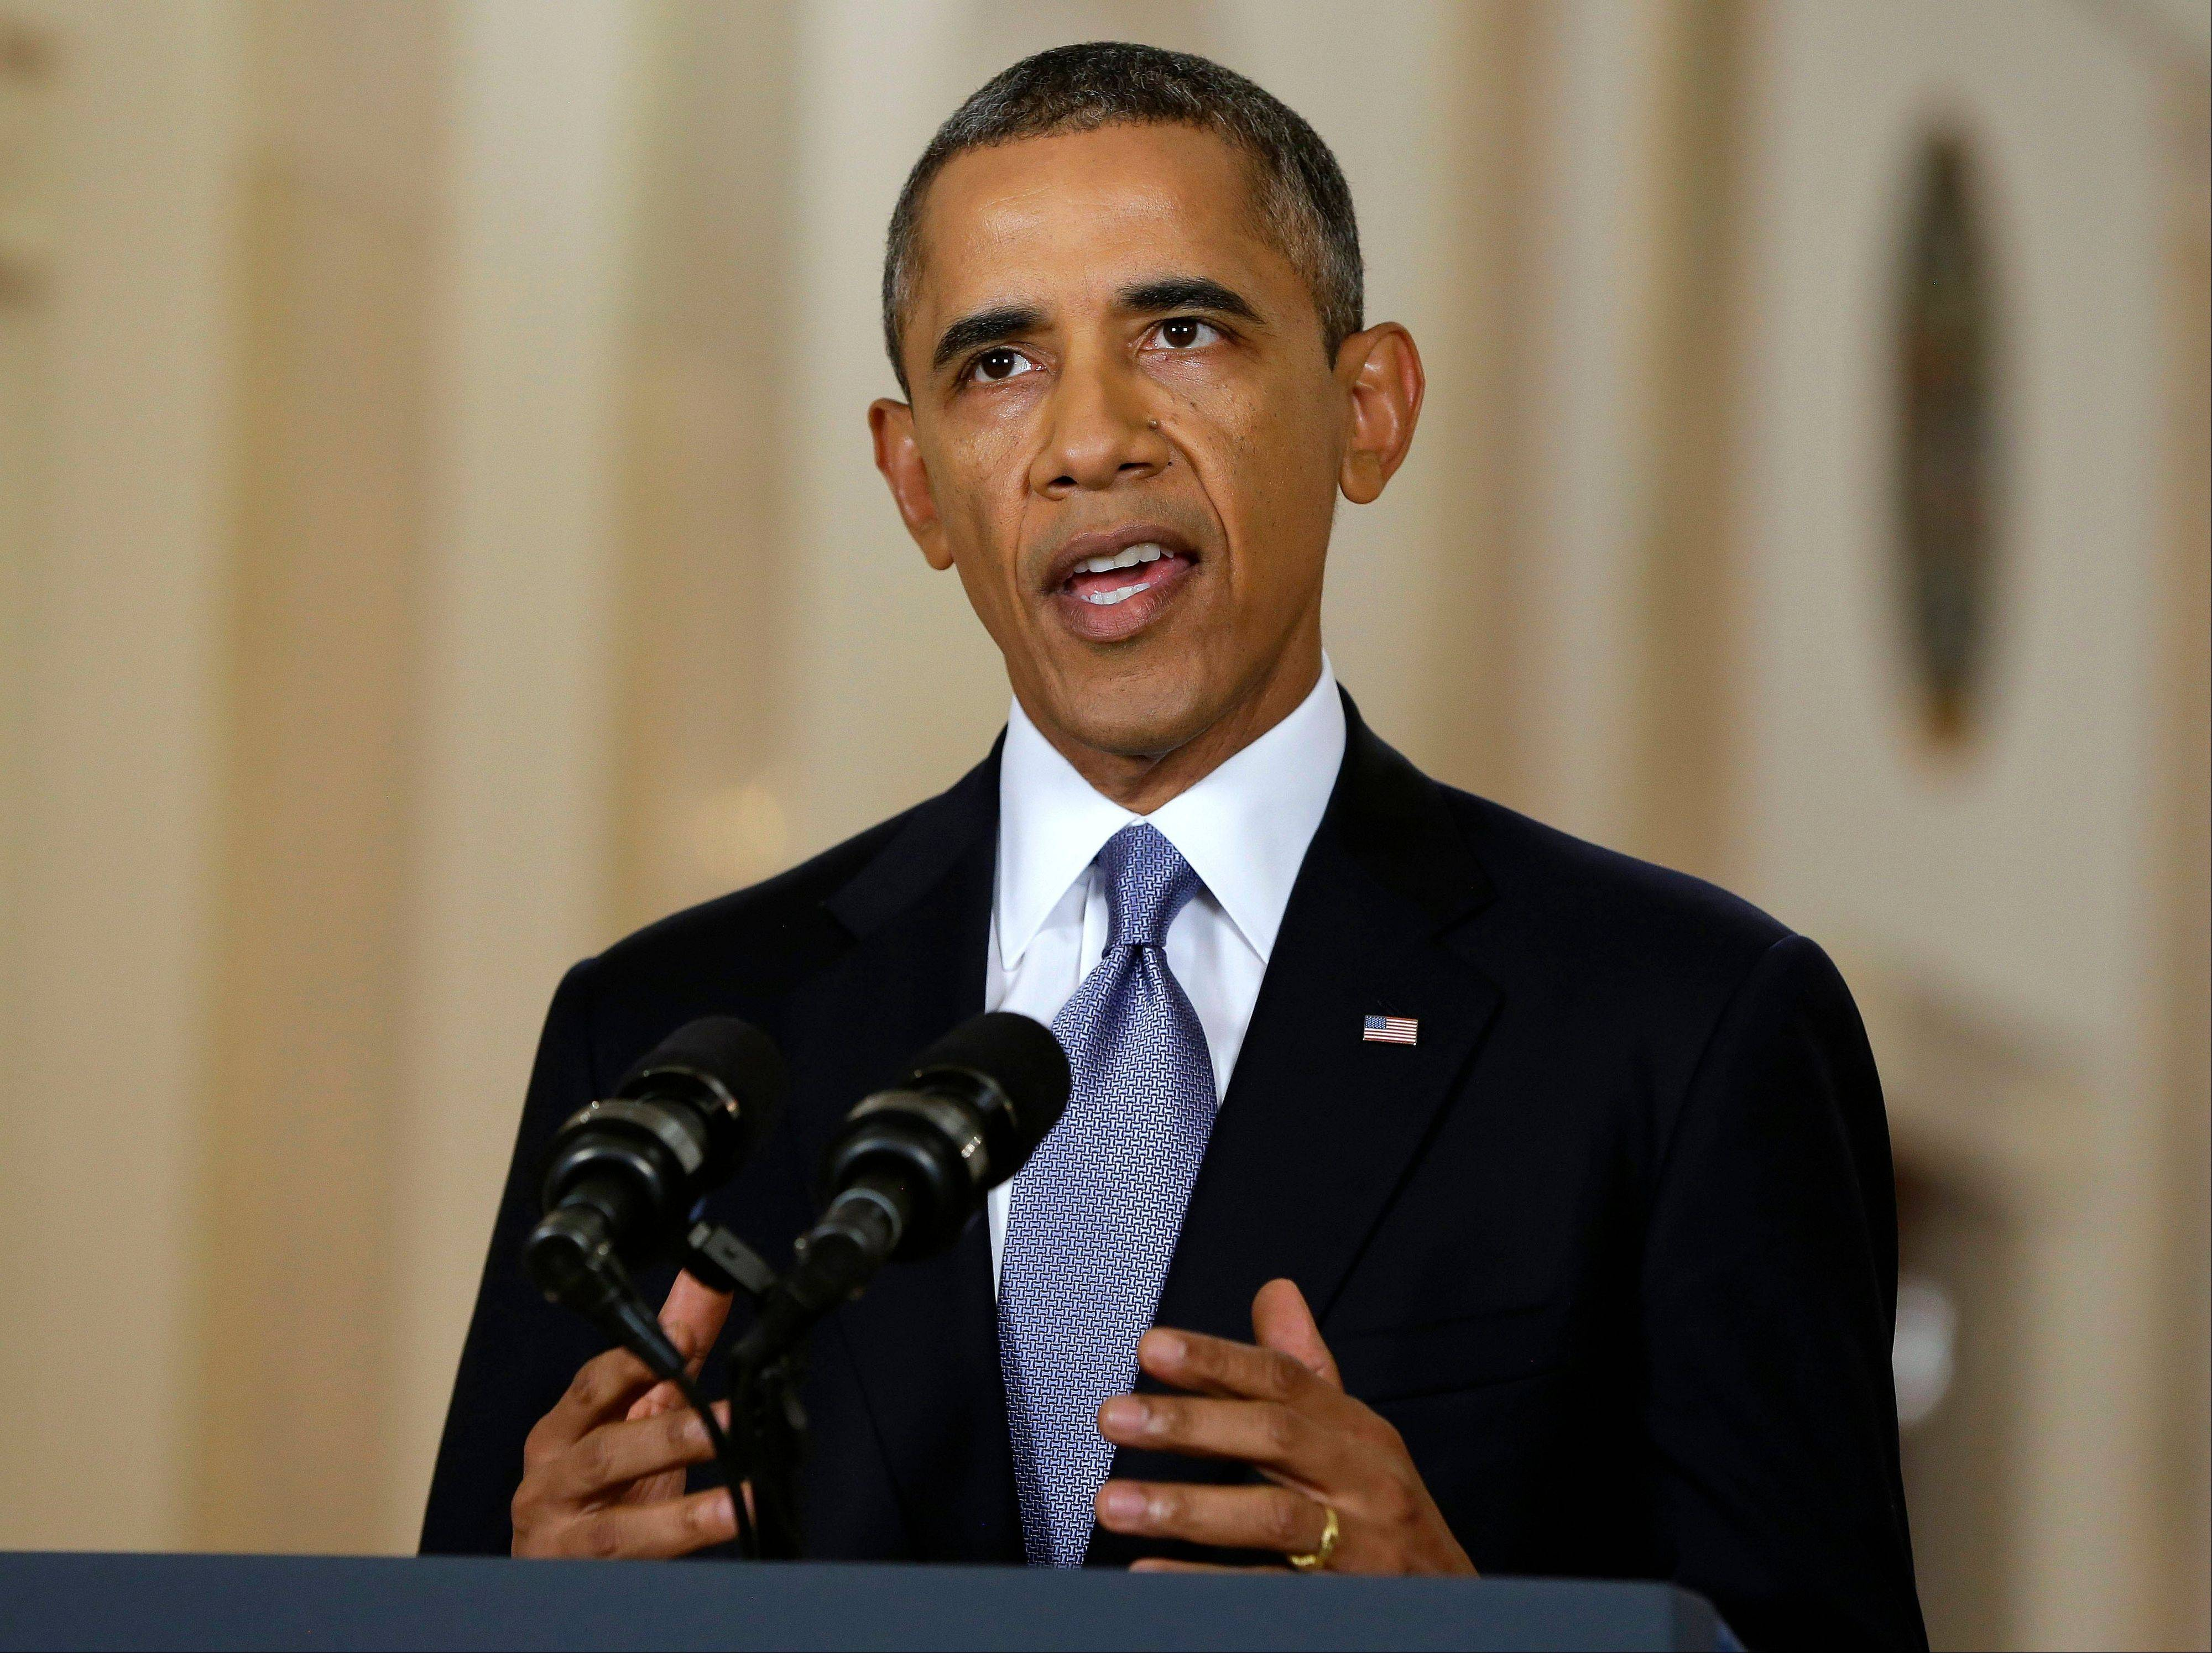 President Barack Obama, addressing the nation in a live televised speech from the East Room of the White House Tuesday, blended the threat of military action with the hope of a diplomatic solution as he works to strip Syria of its chemical weapons.